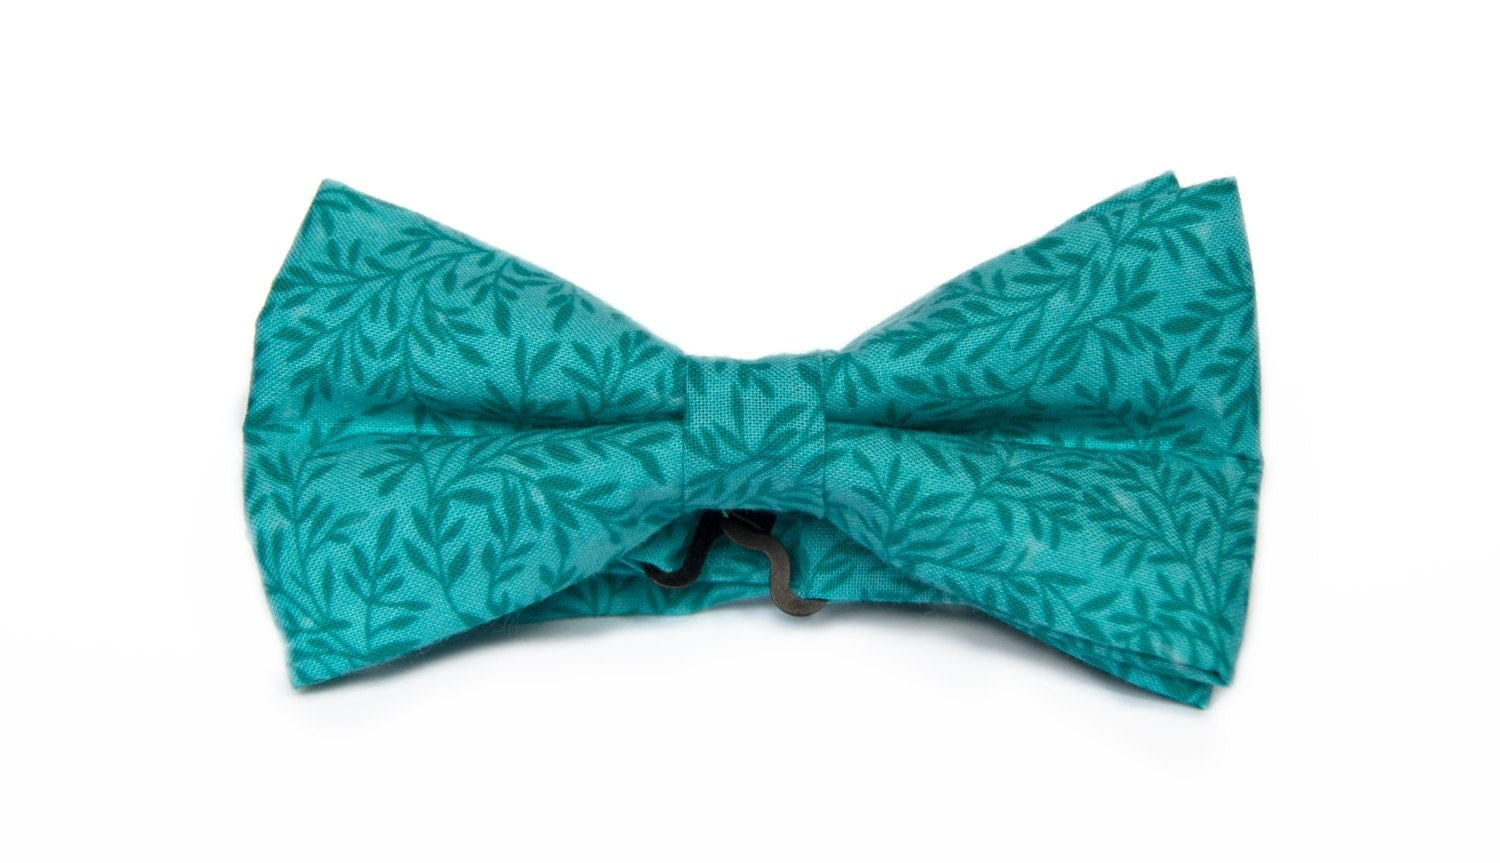 s bow tie teal with floral patterns handmade pretied